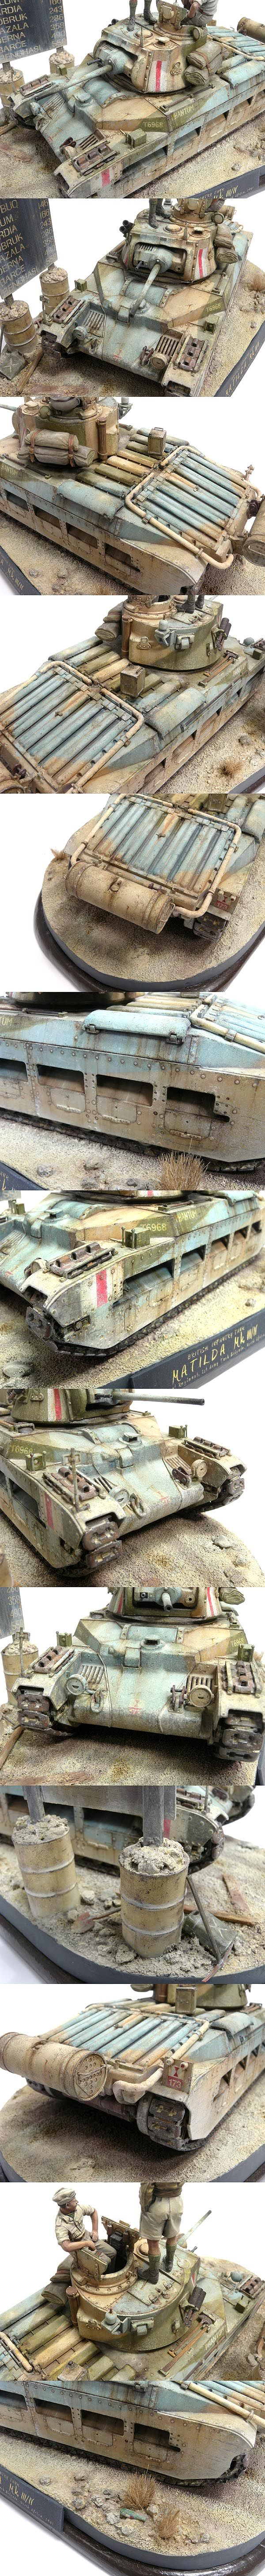 "Matilda Mk. III/IV. Phantom Regiment 1st Army Brigade. North Africa 1941. TAMIYA 1/35 scale. By Dennis ""Seed"" Wong. #scale_model #WW2 #tank"